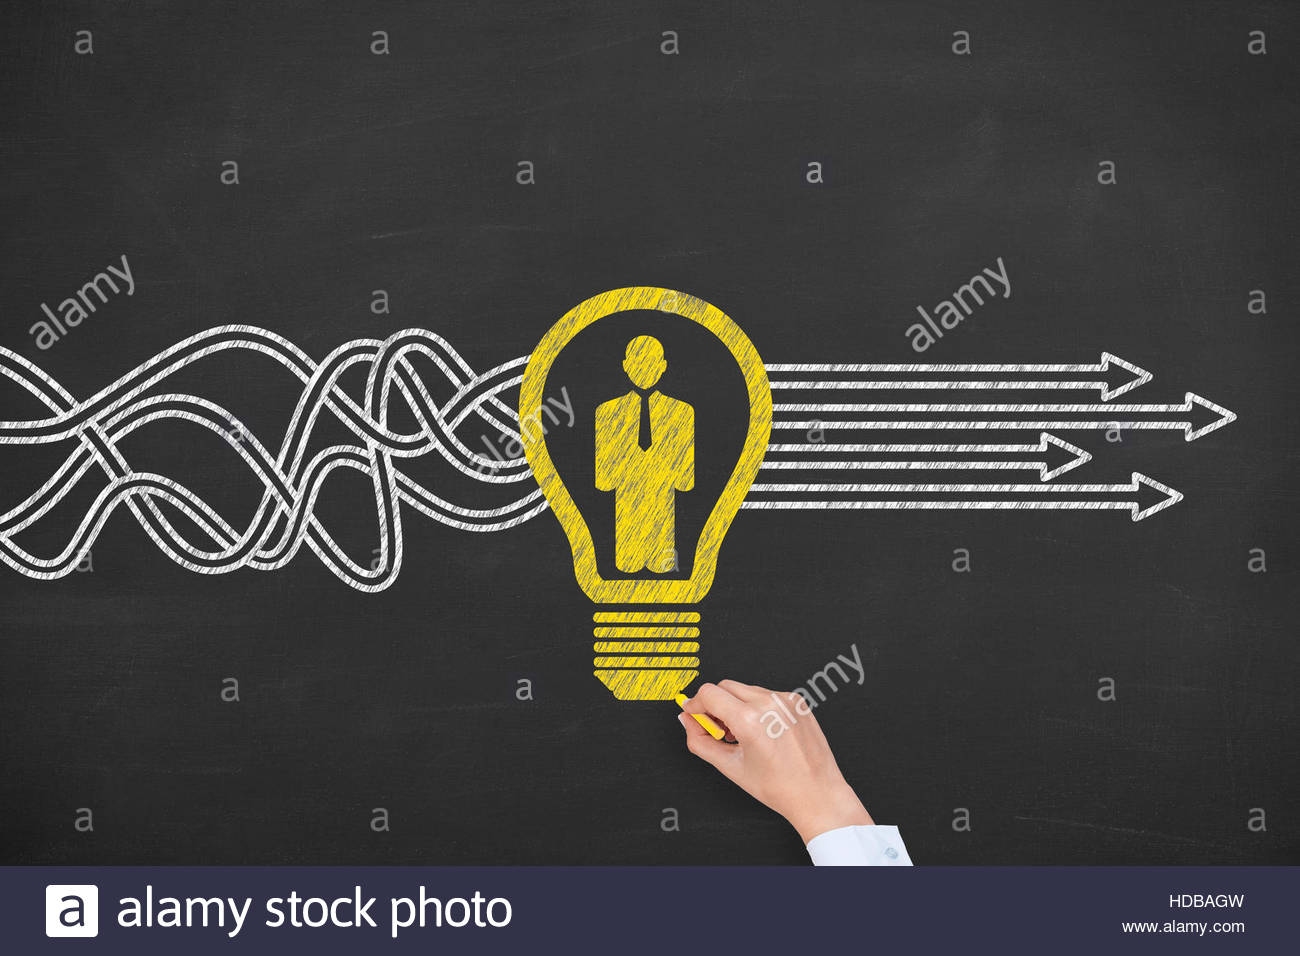 Human Resource and Idea With Person - Stock Image